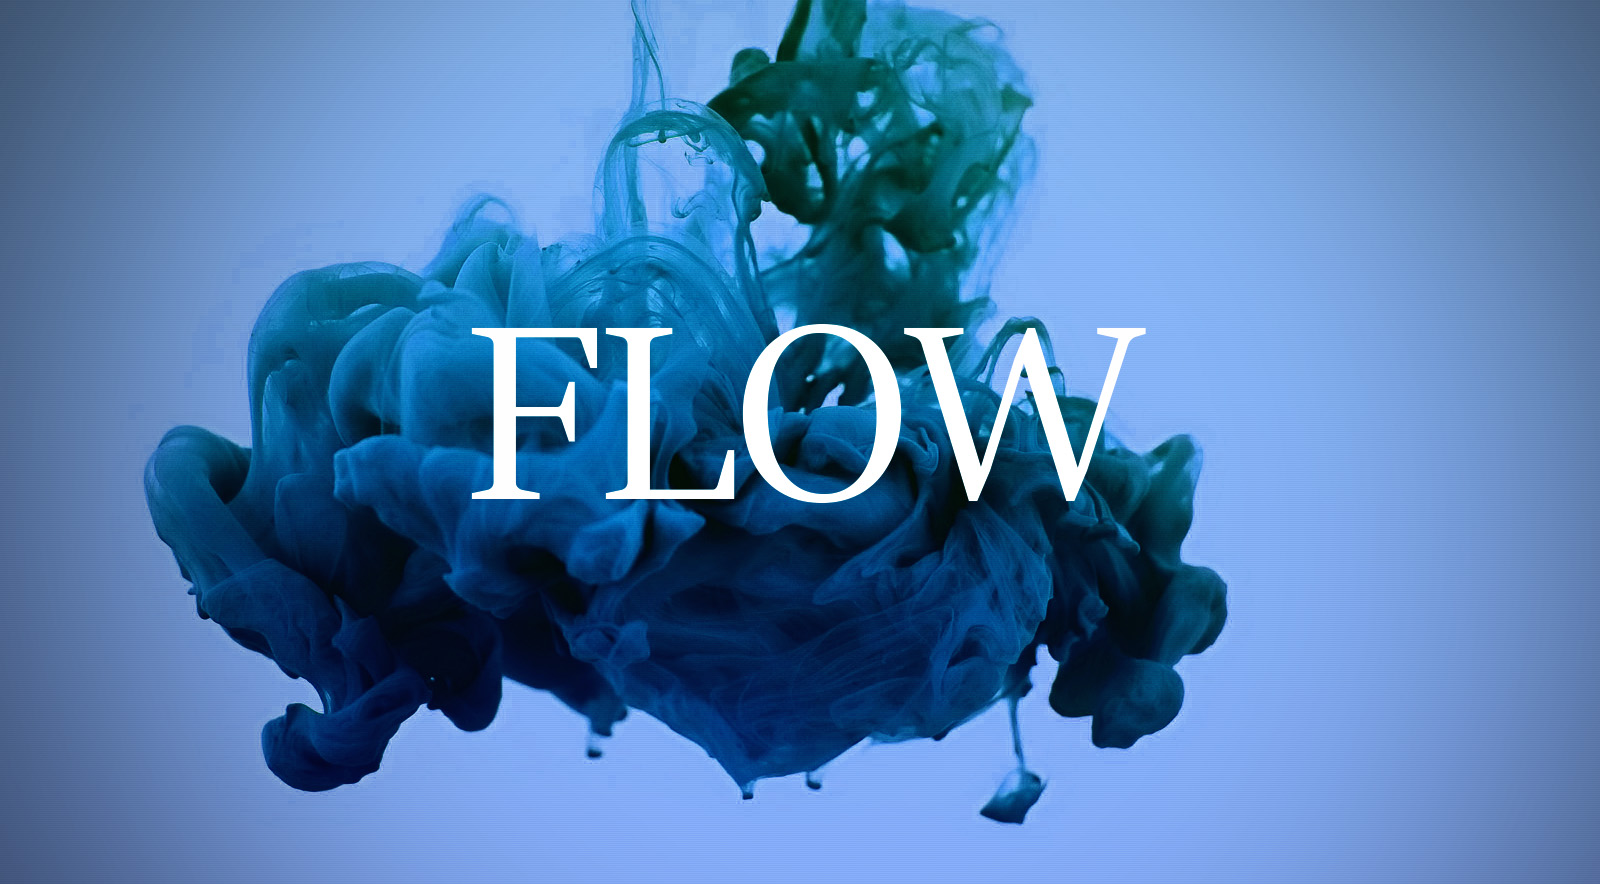 flow graphic made my the awesome Deyling!.jpg